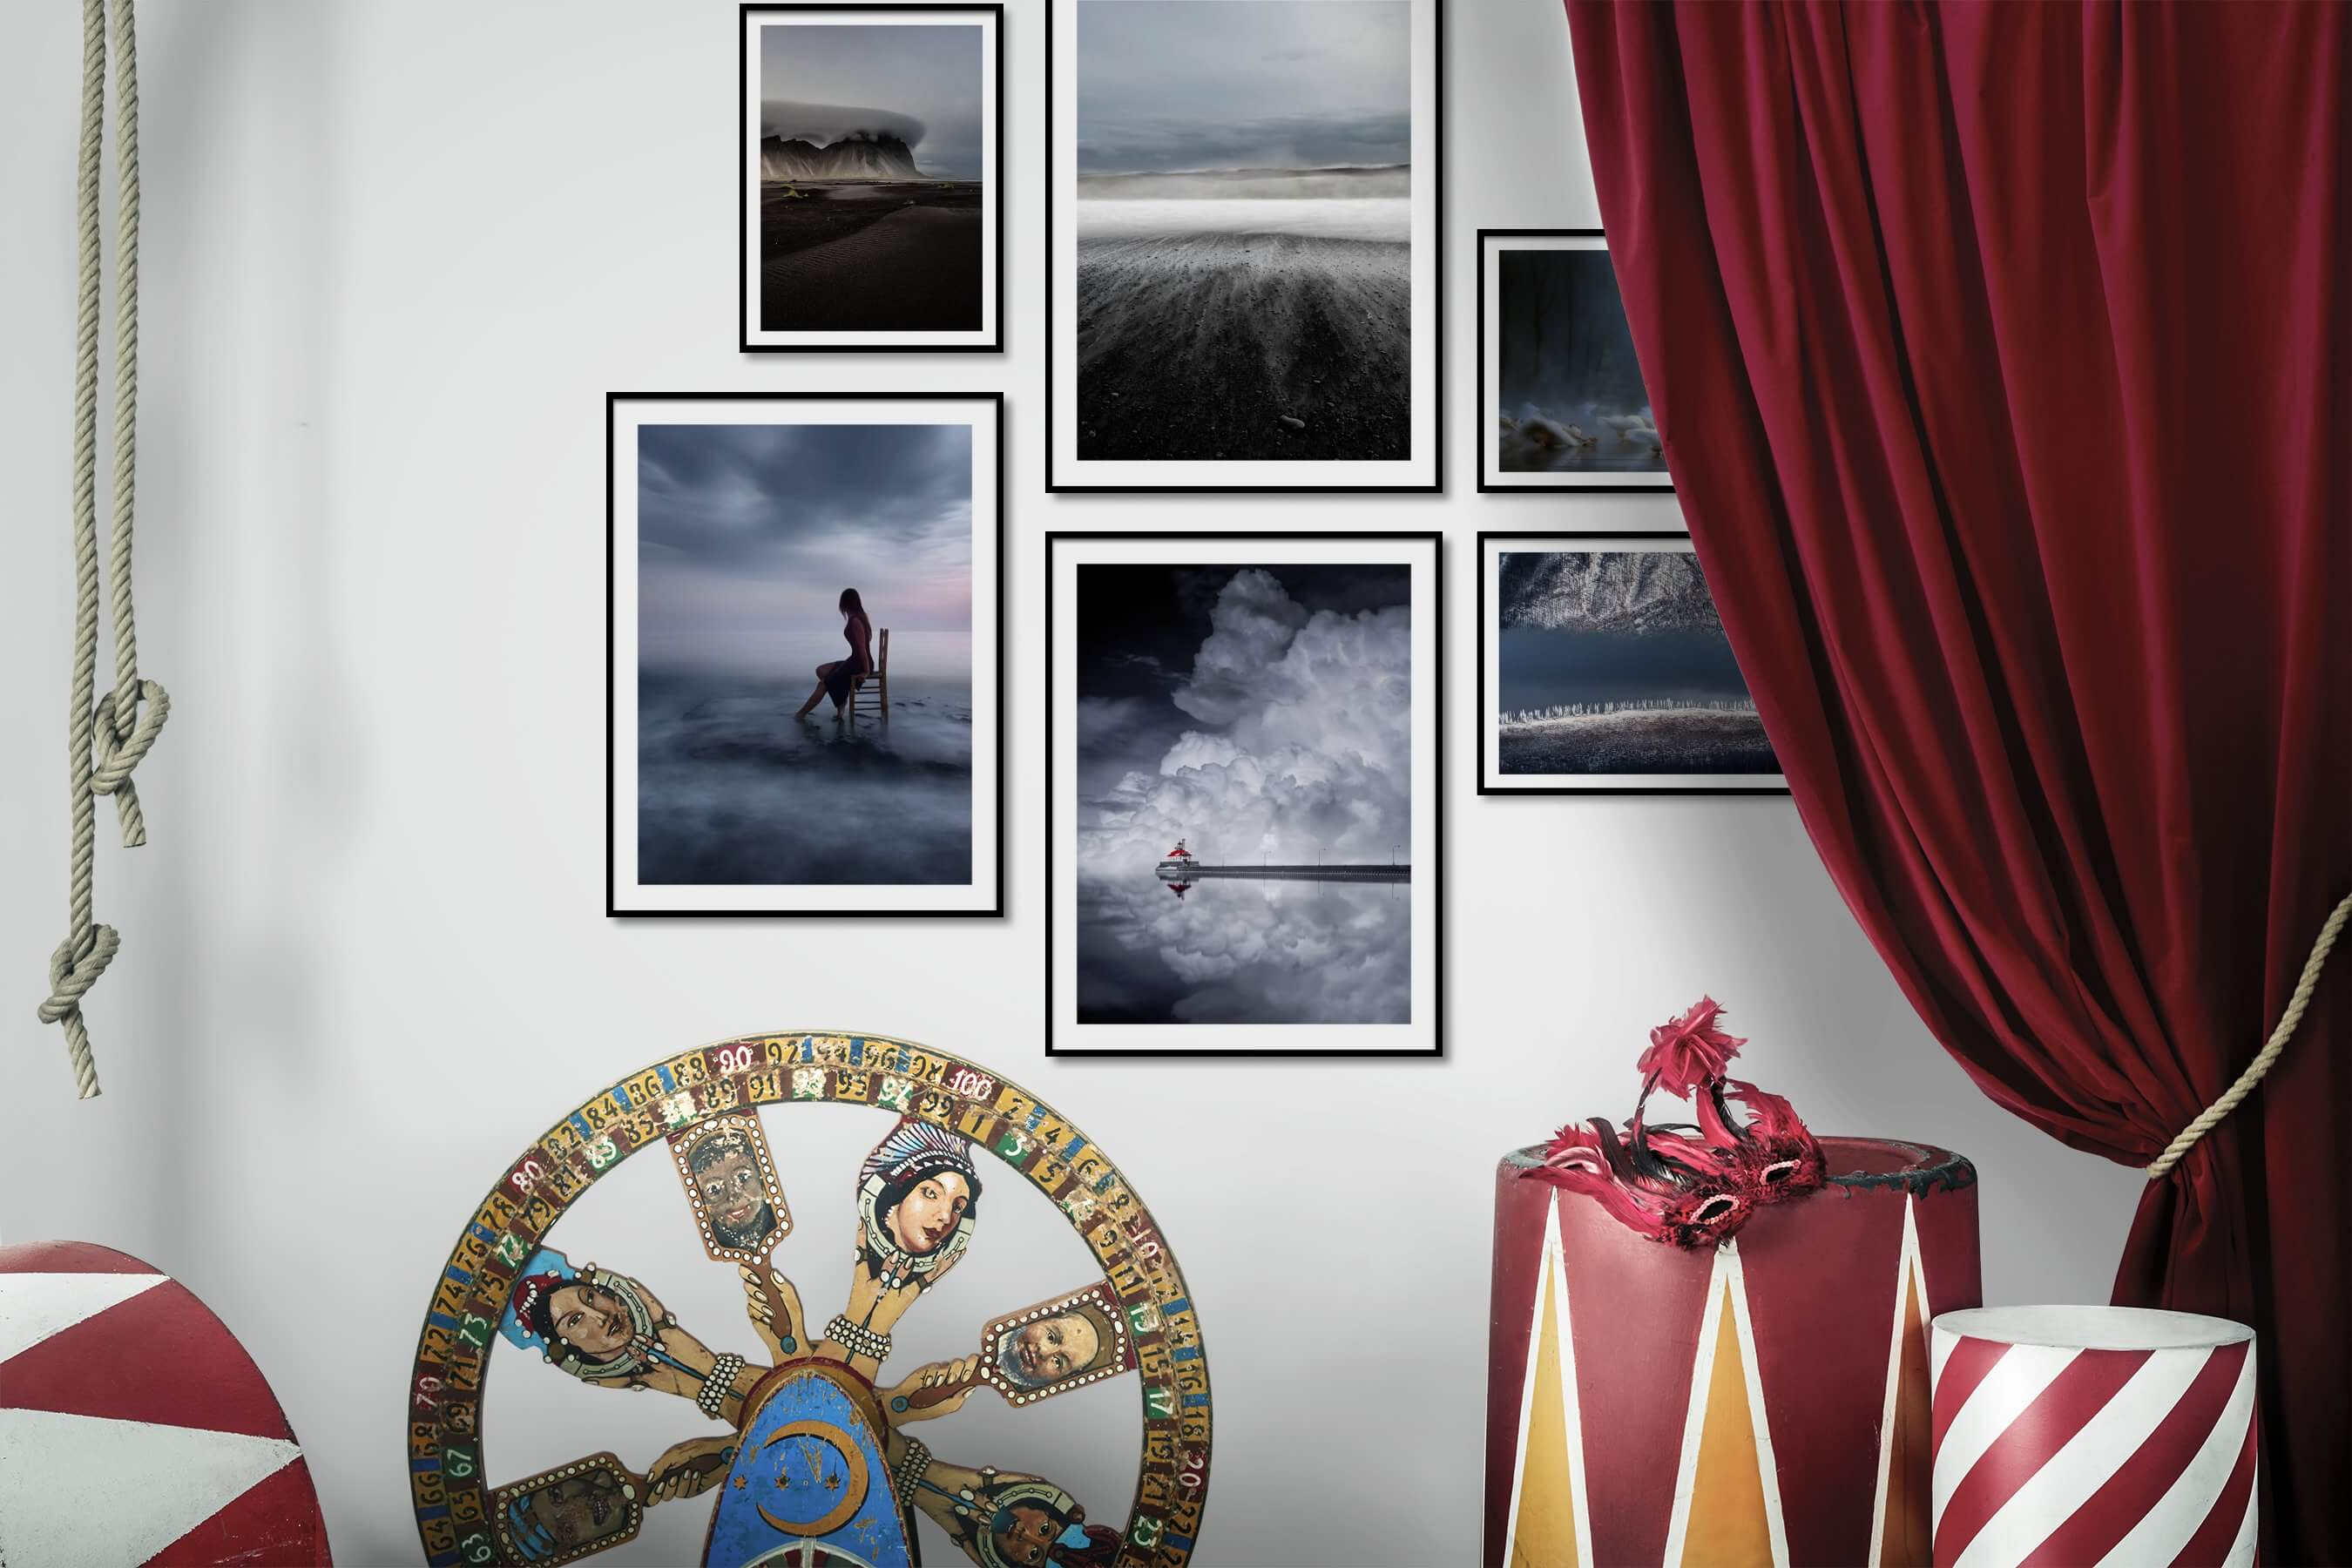 Gallery wall idea with six framed pictures arranged on a wall depicting Nature, Beach & Water, For the Minimalist, Mindfulness, and Fashion & Beauty